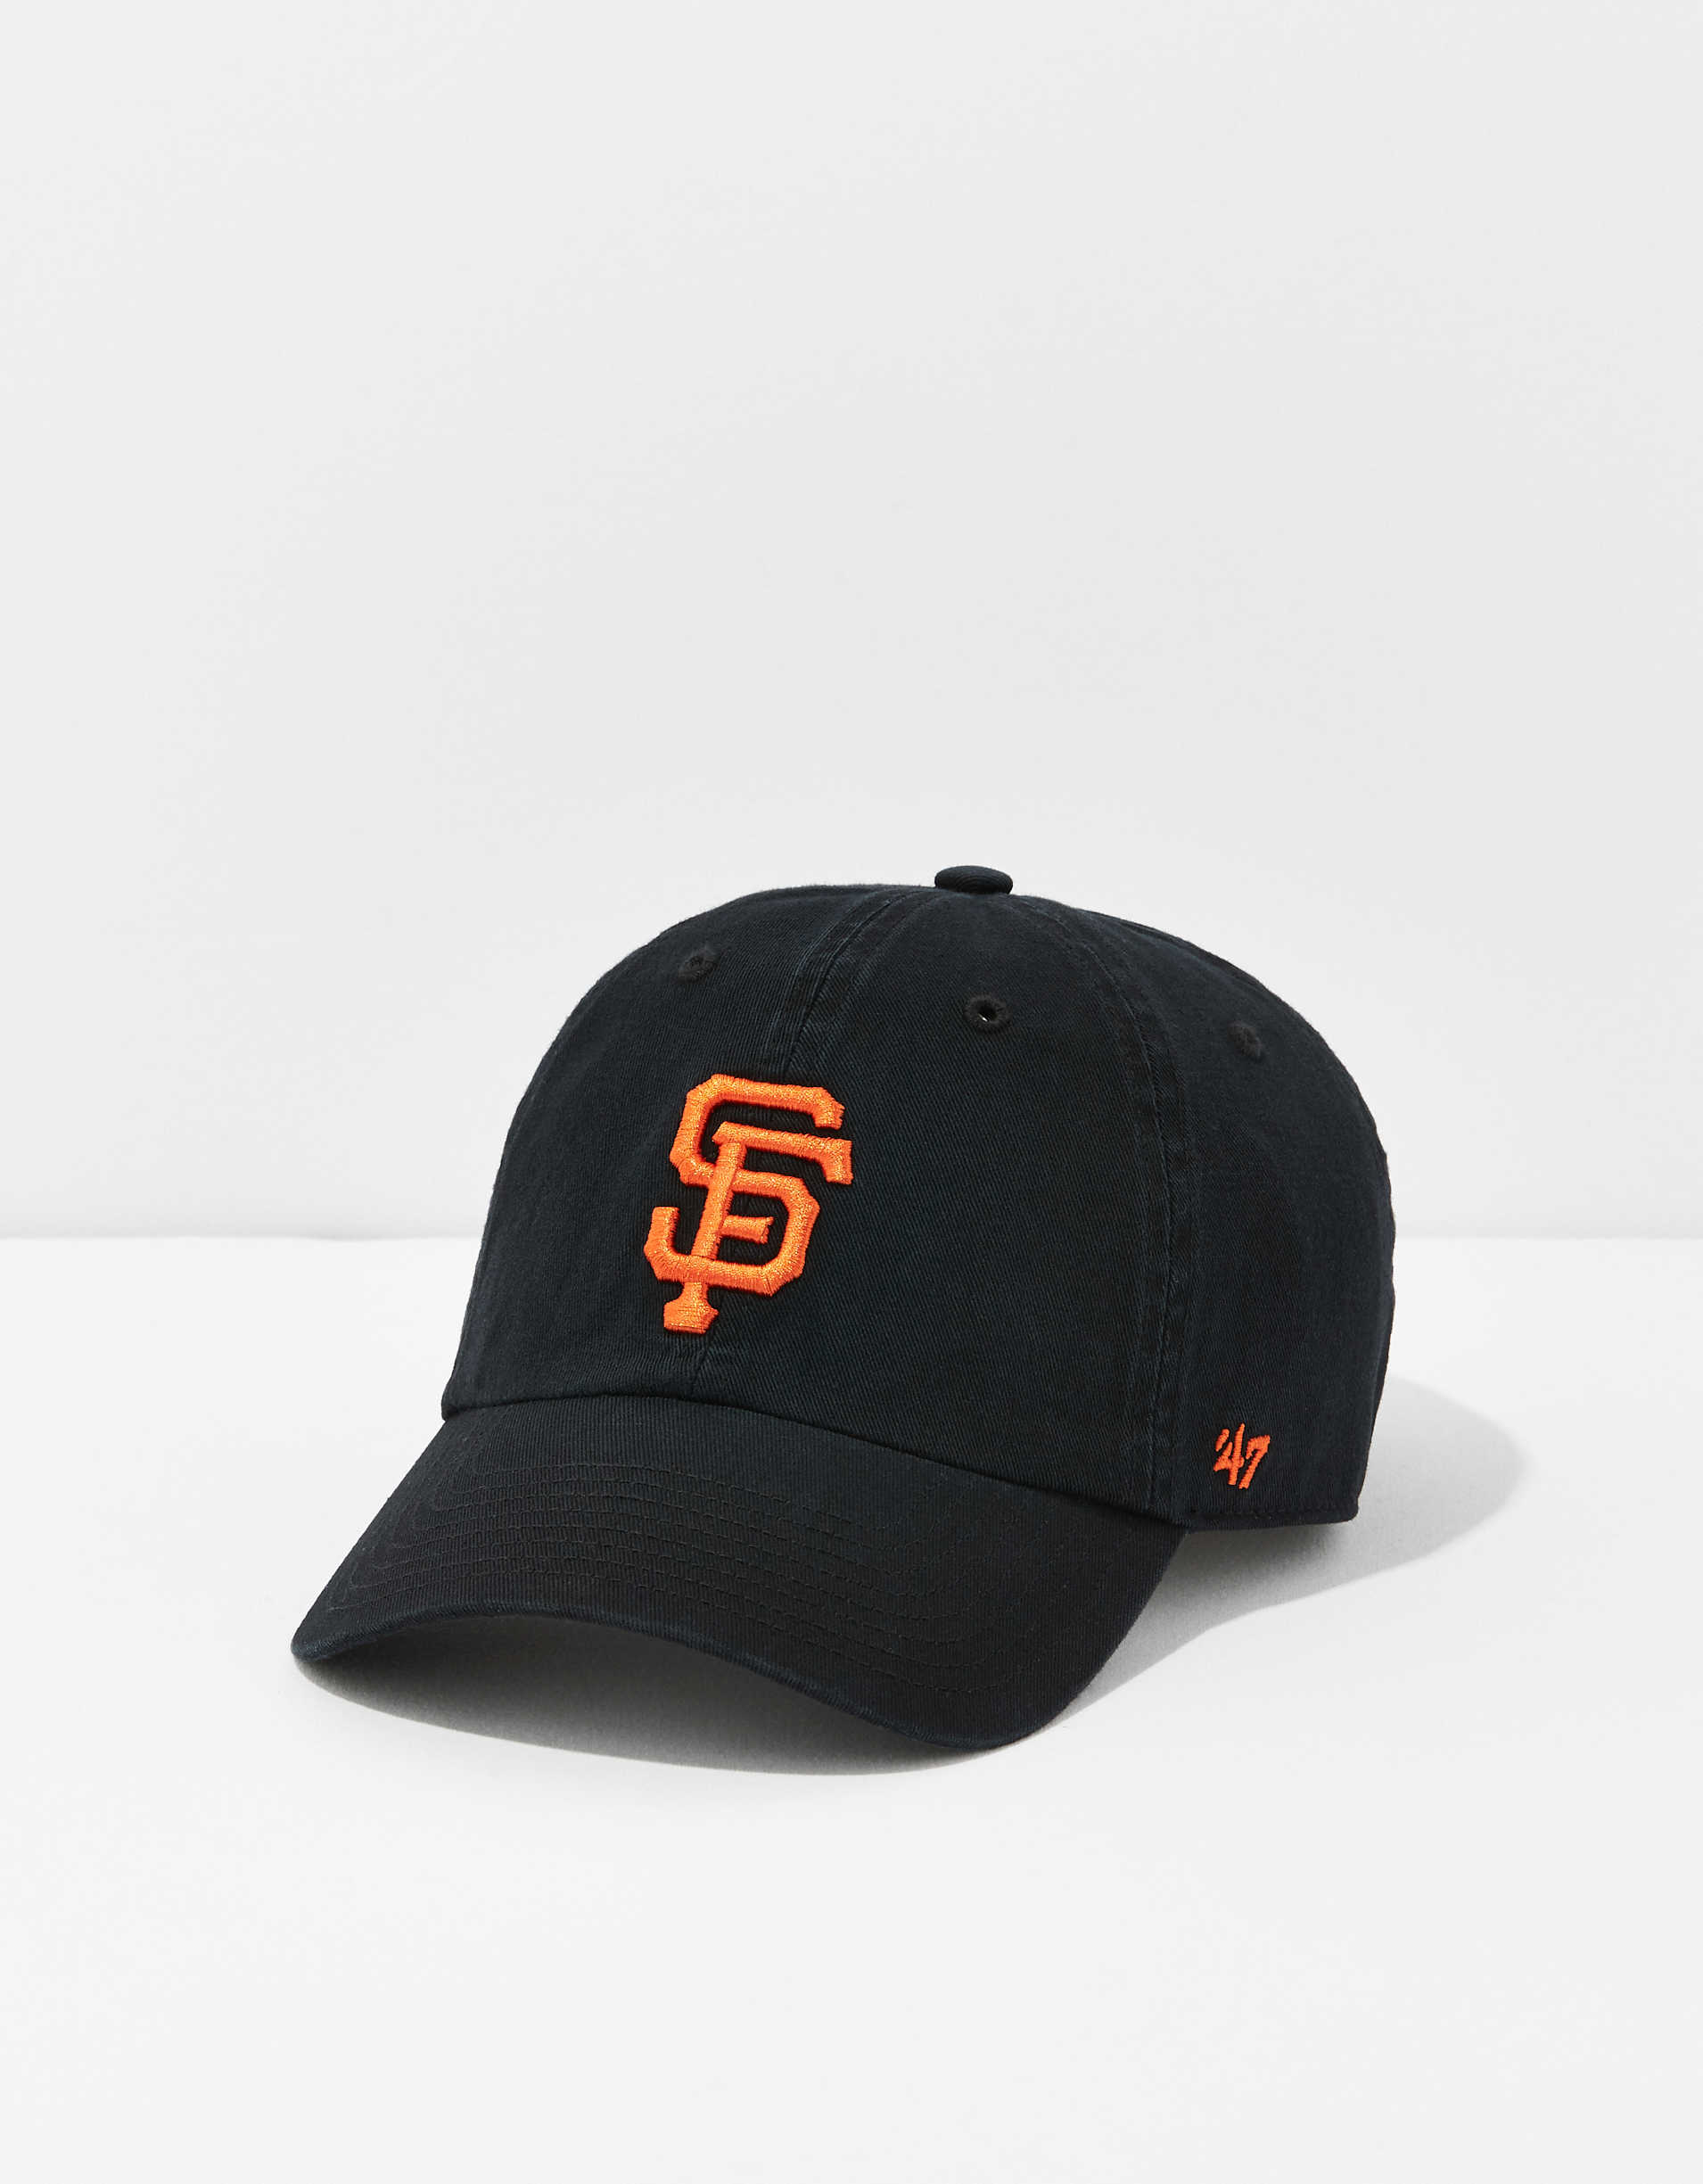 '47 San Francisco Giants Baseball Hat